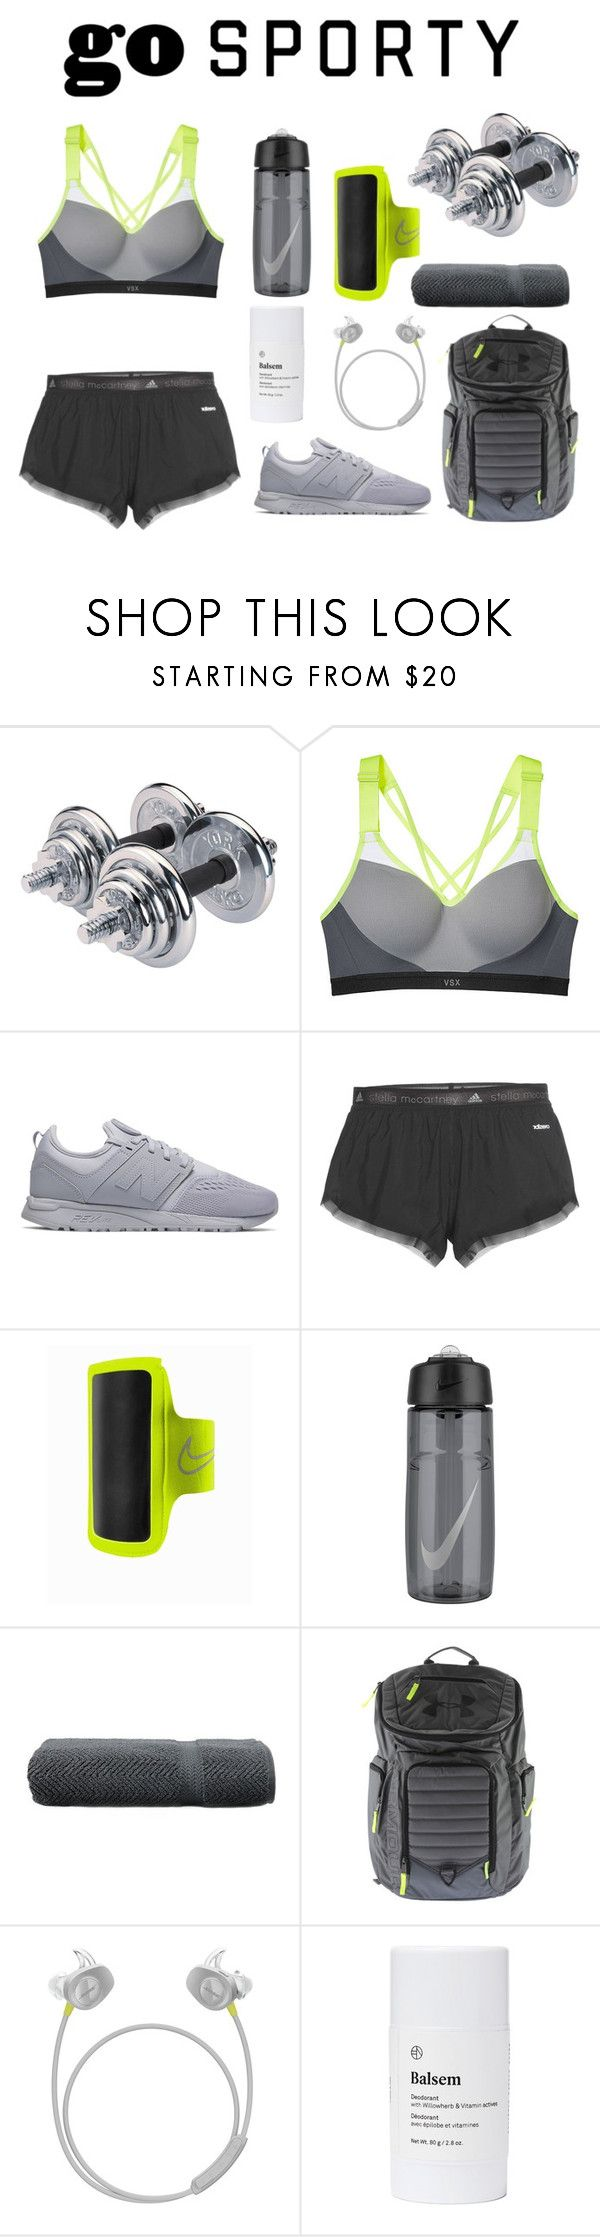 """""""go SPORTY"""" by theodor44444 ❤ liked on Polyvore featuring Victoria's Secret, New Balance, adidas, NIKE, Linum Home Textiles, Under Armour, Bose and Balsem"""